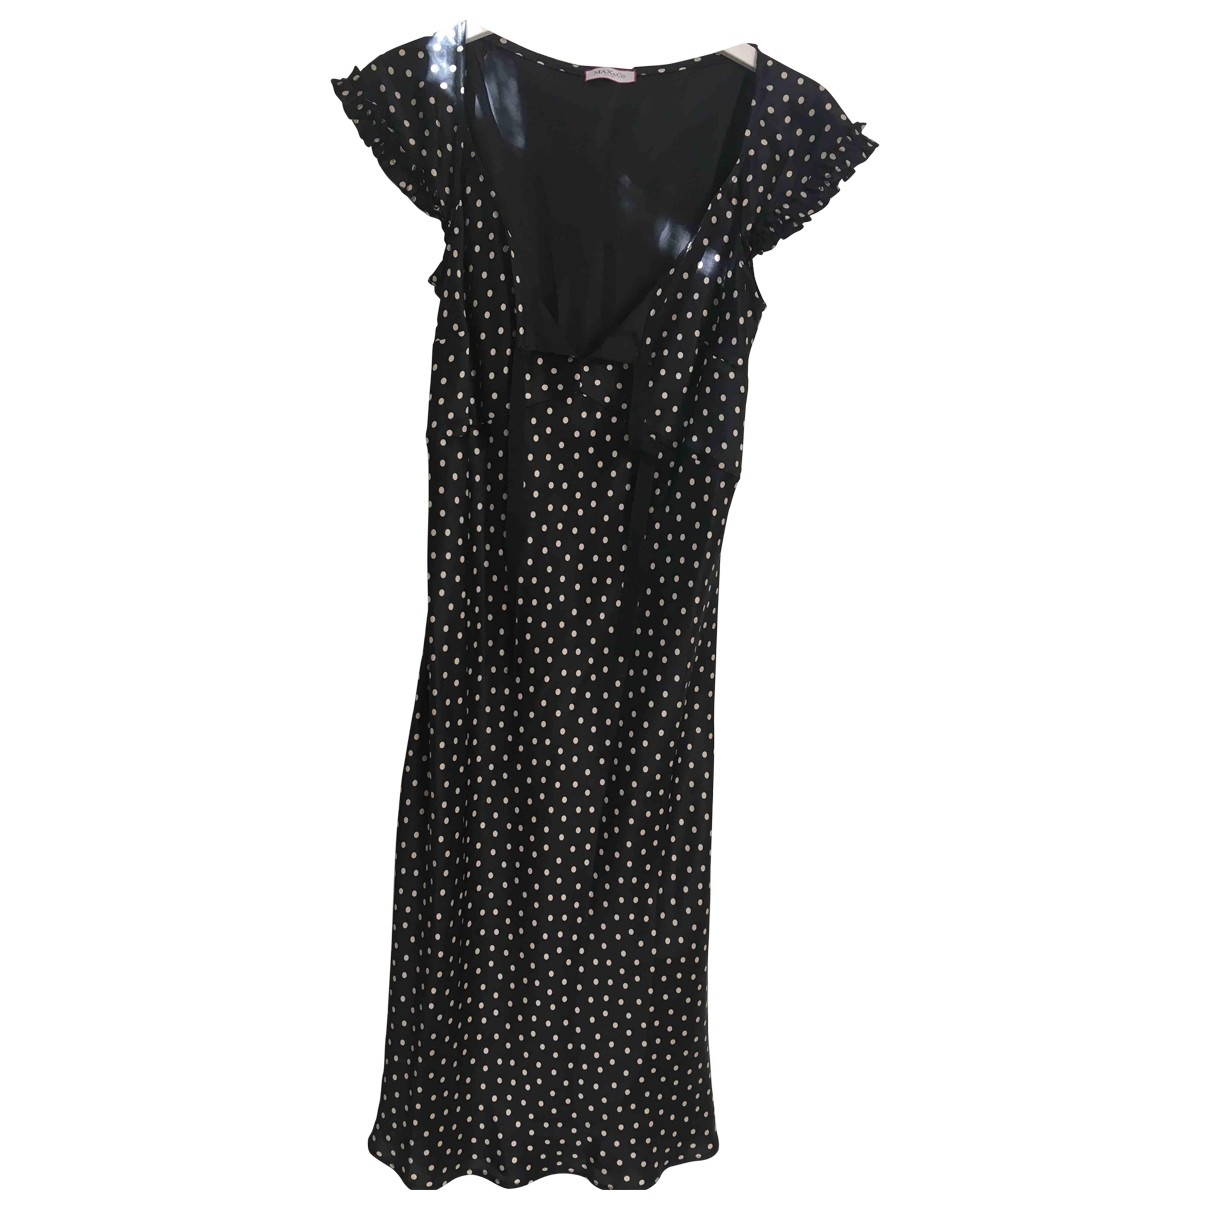 Max & Co \N Black Silk dress for Women 40 IT